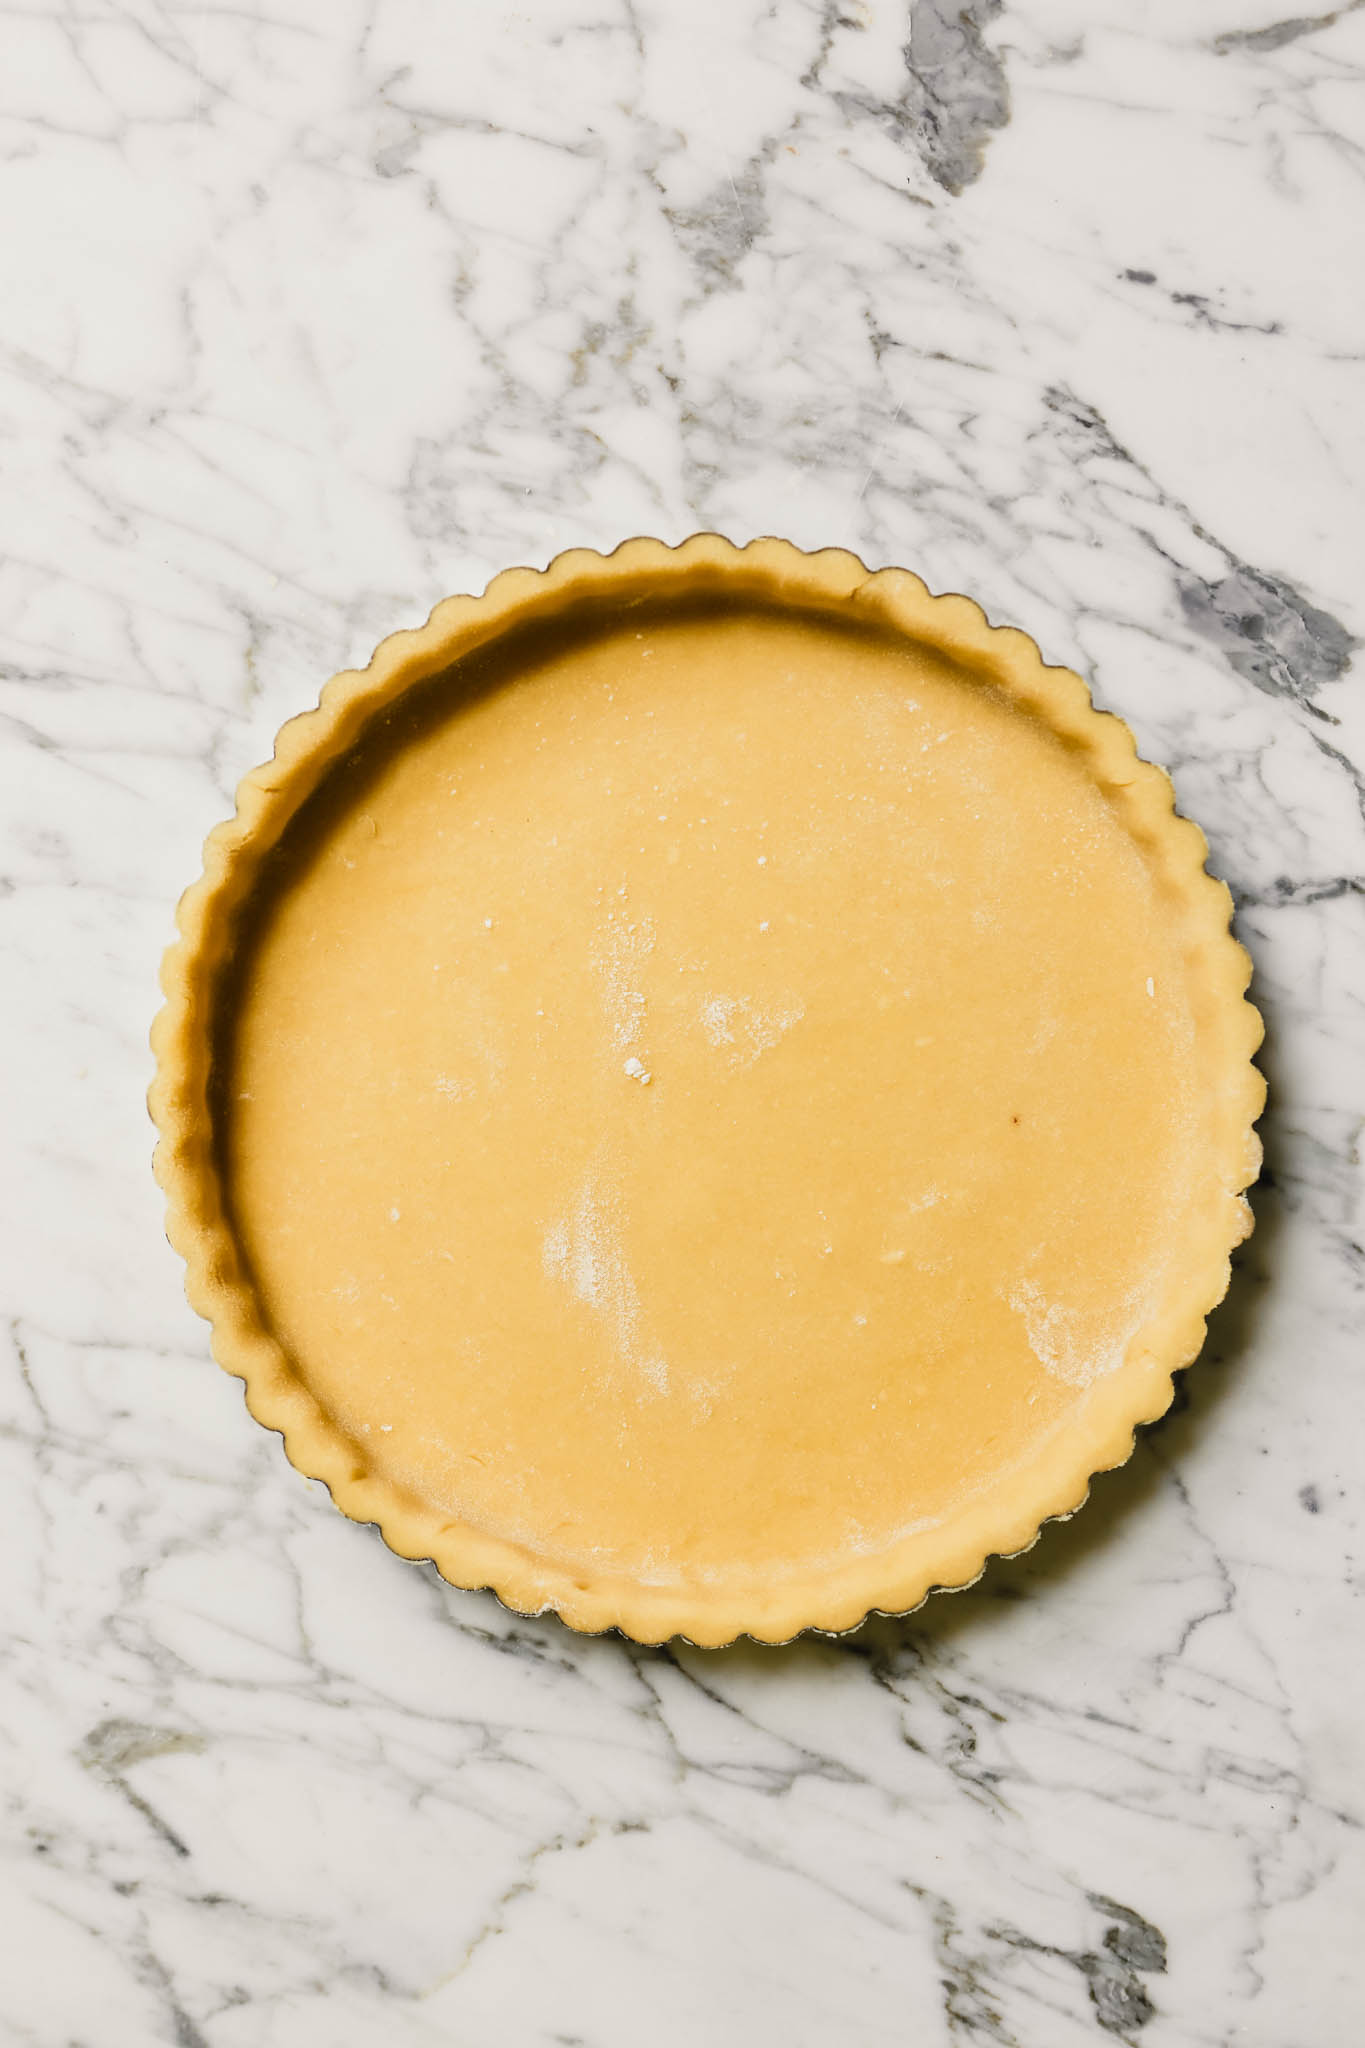 Photograph of an unbaked tart shell in a tart pan set on a marble table.